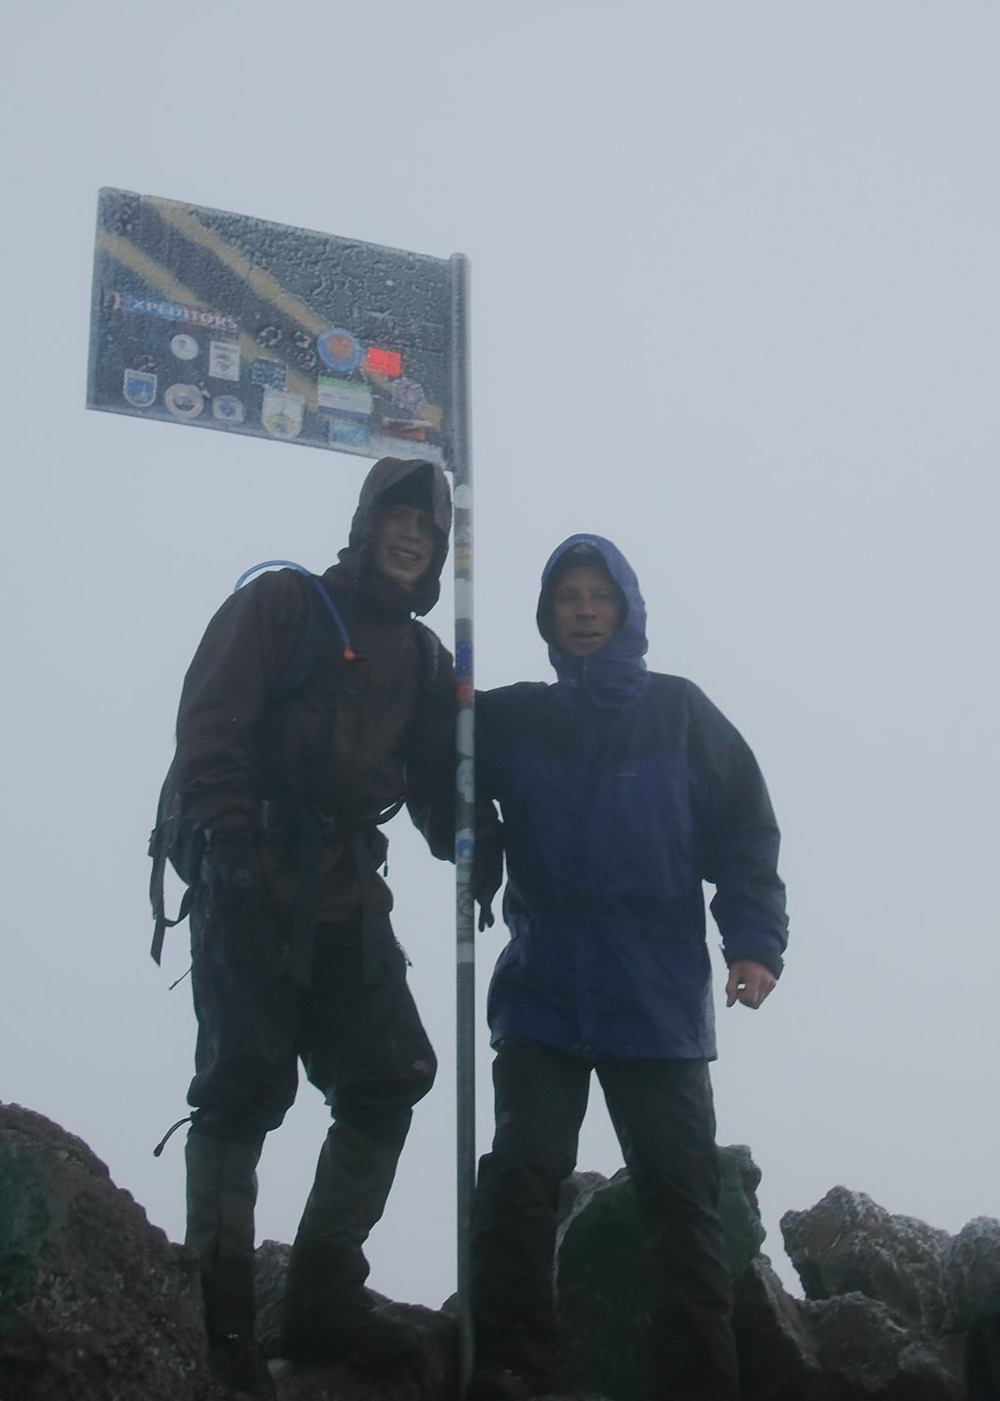 Mt Meru (4,565 metres) - June 2008